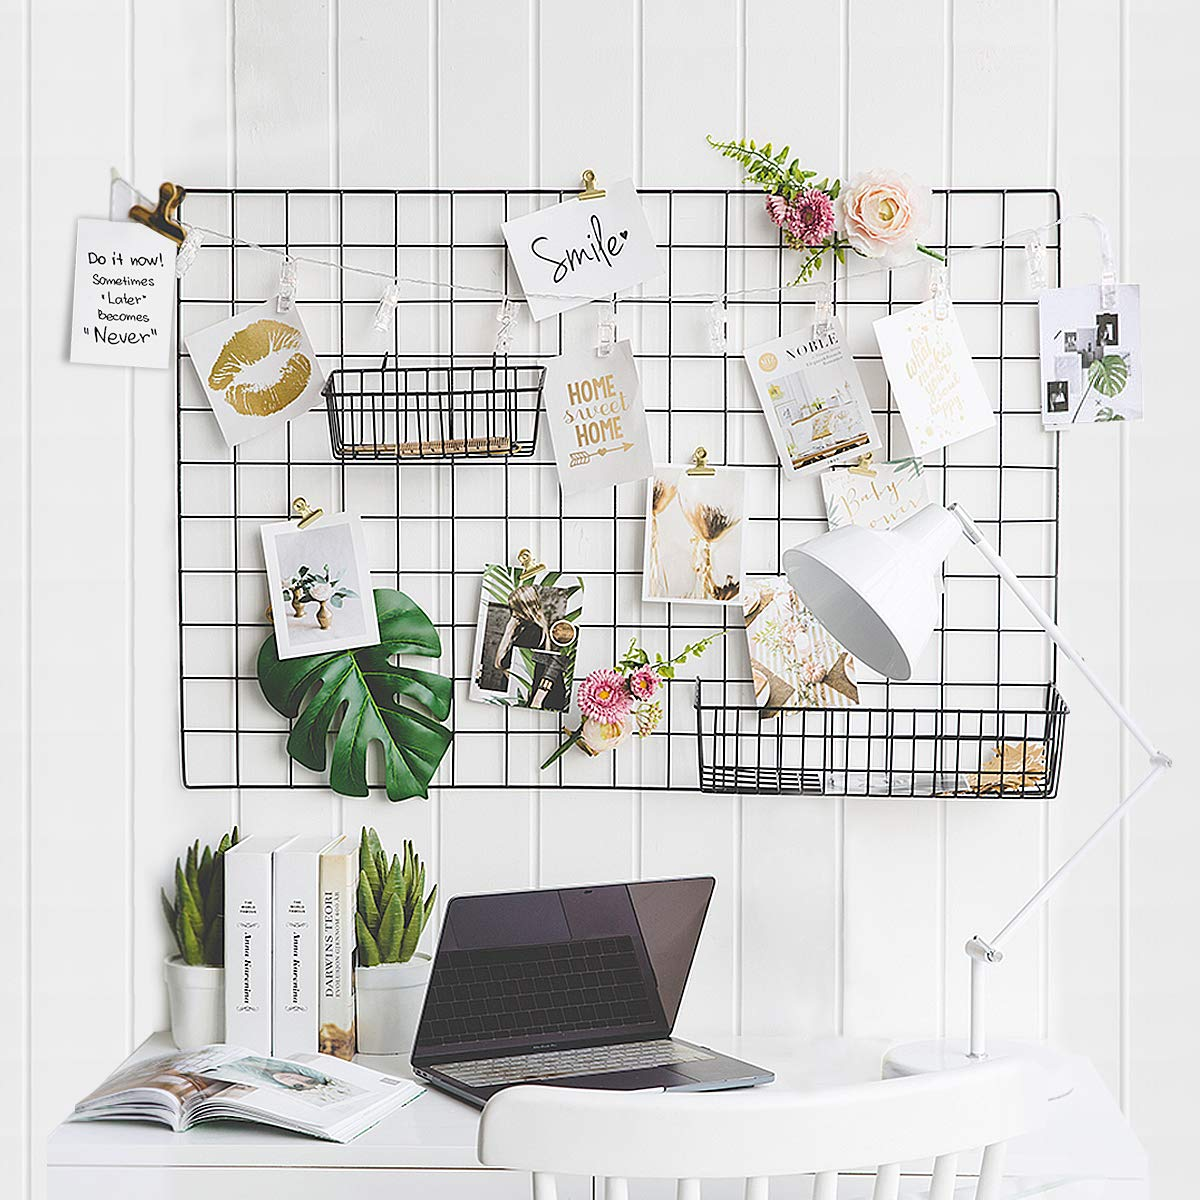 GBYAN Grid Wall Panel Decorative Iron Rack Clip Photo Holder, Painted Wire Photograph Hanging Picture Multifunctional Hanging Display Wall Storage Organizer,25.6'' x17.7'' (2 Pack) (Black Rectangle) by GBYAN